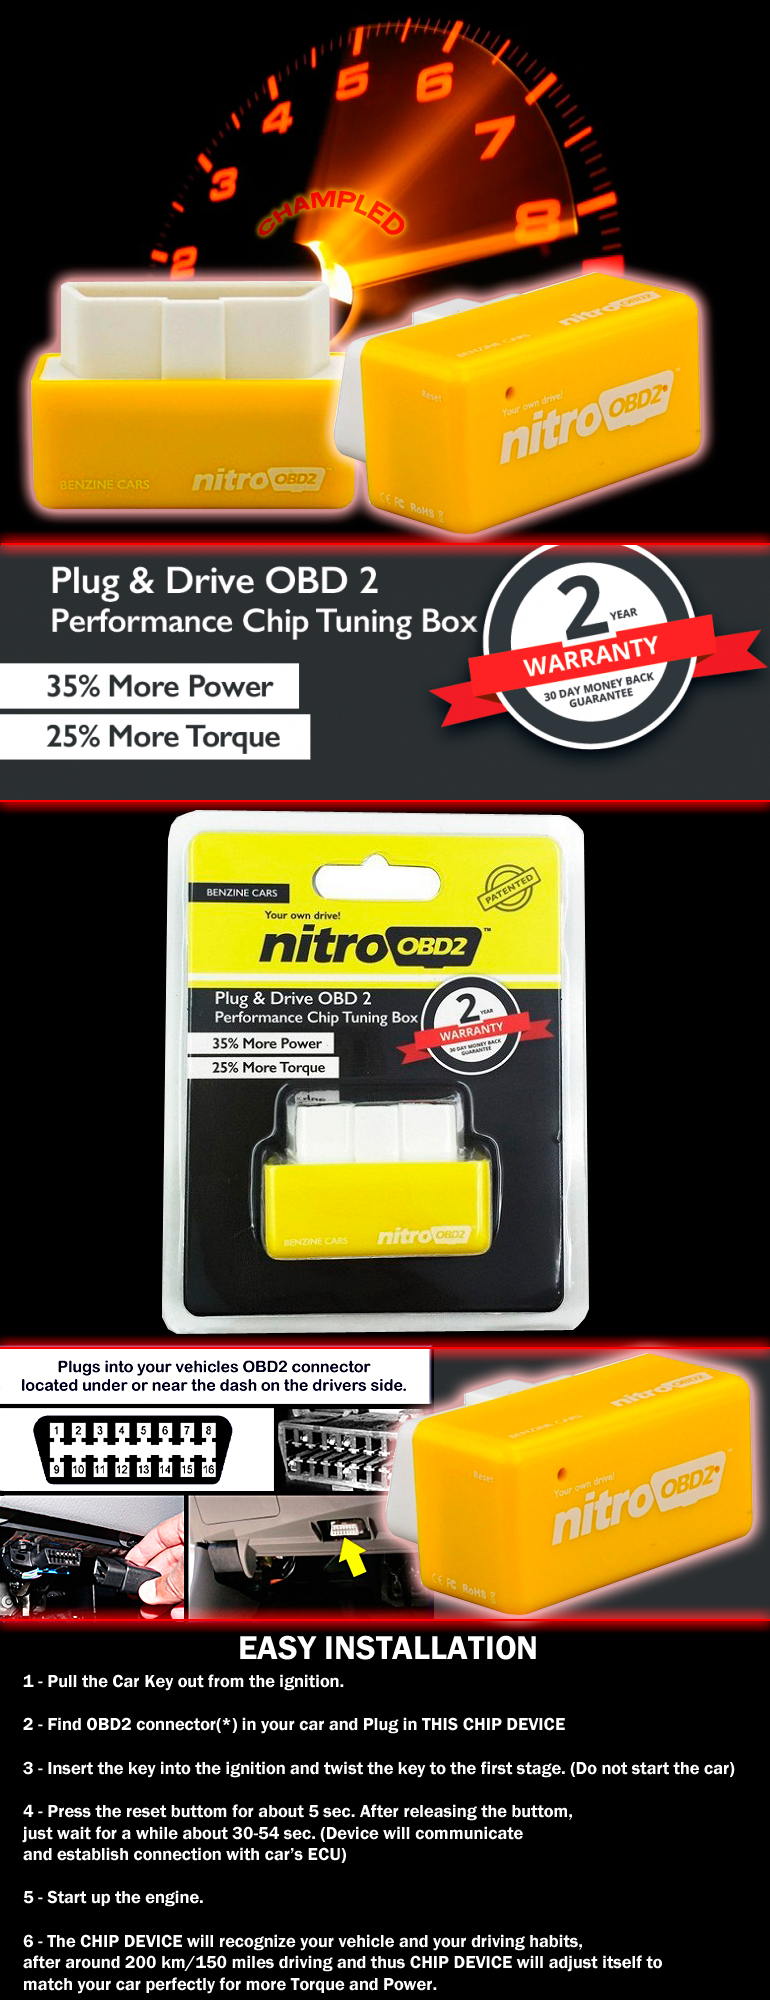 nitro obd2 plug and drive obdii performance chip tuning. Black Bedroom Furniture Sets. Home Design Ideas